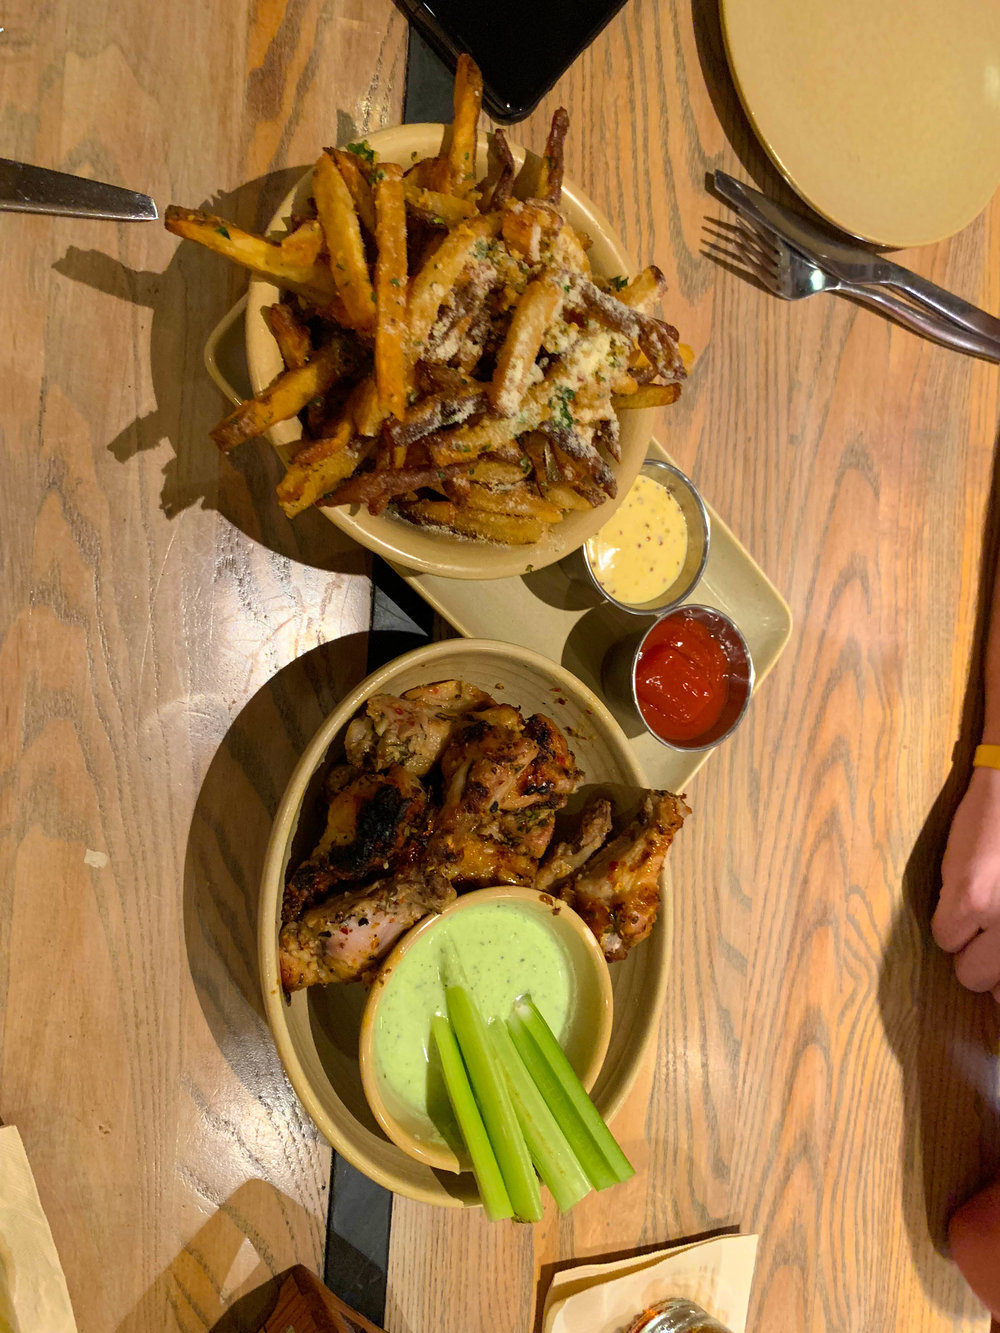 APPETIZERS AT MONKEYPOD KITCHEN IN MAUI - Chicken Wings and Fries